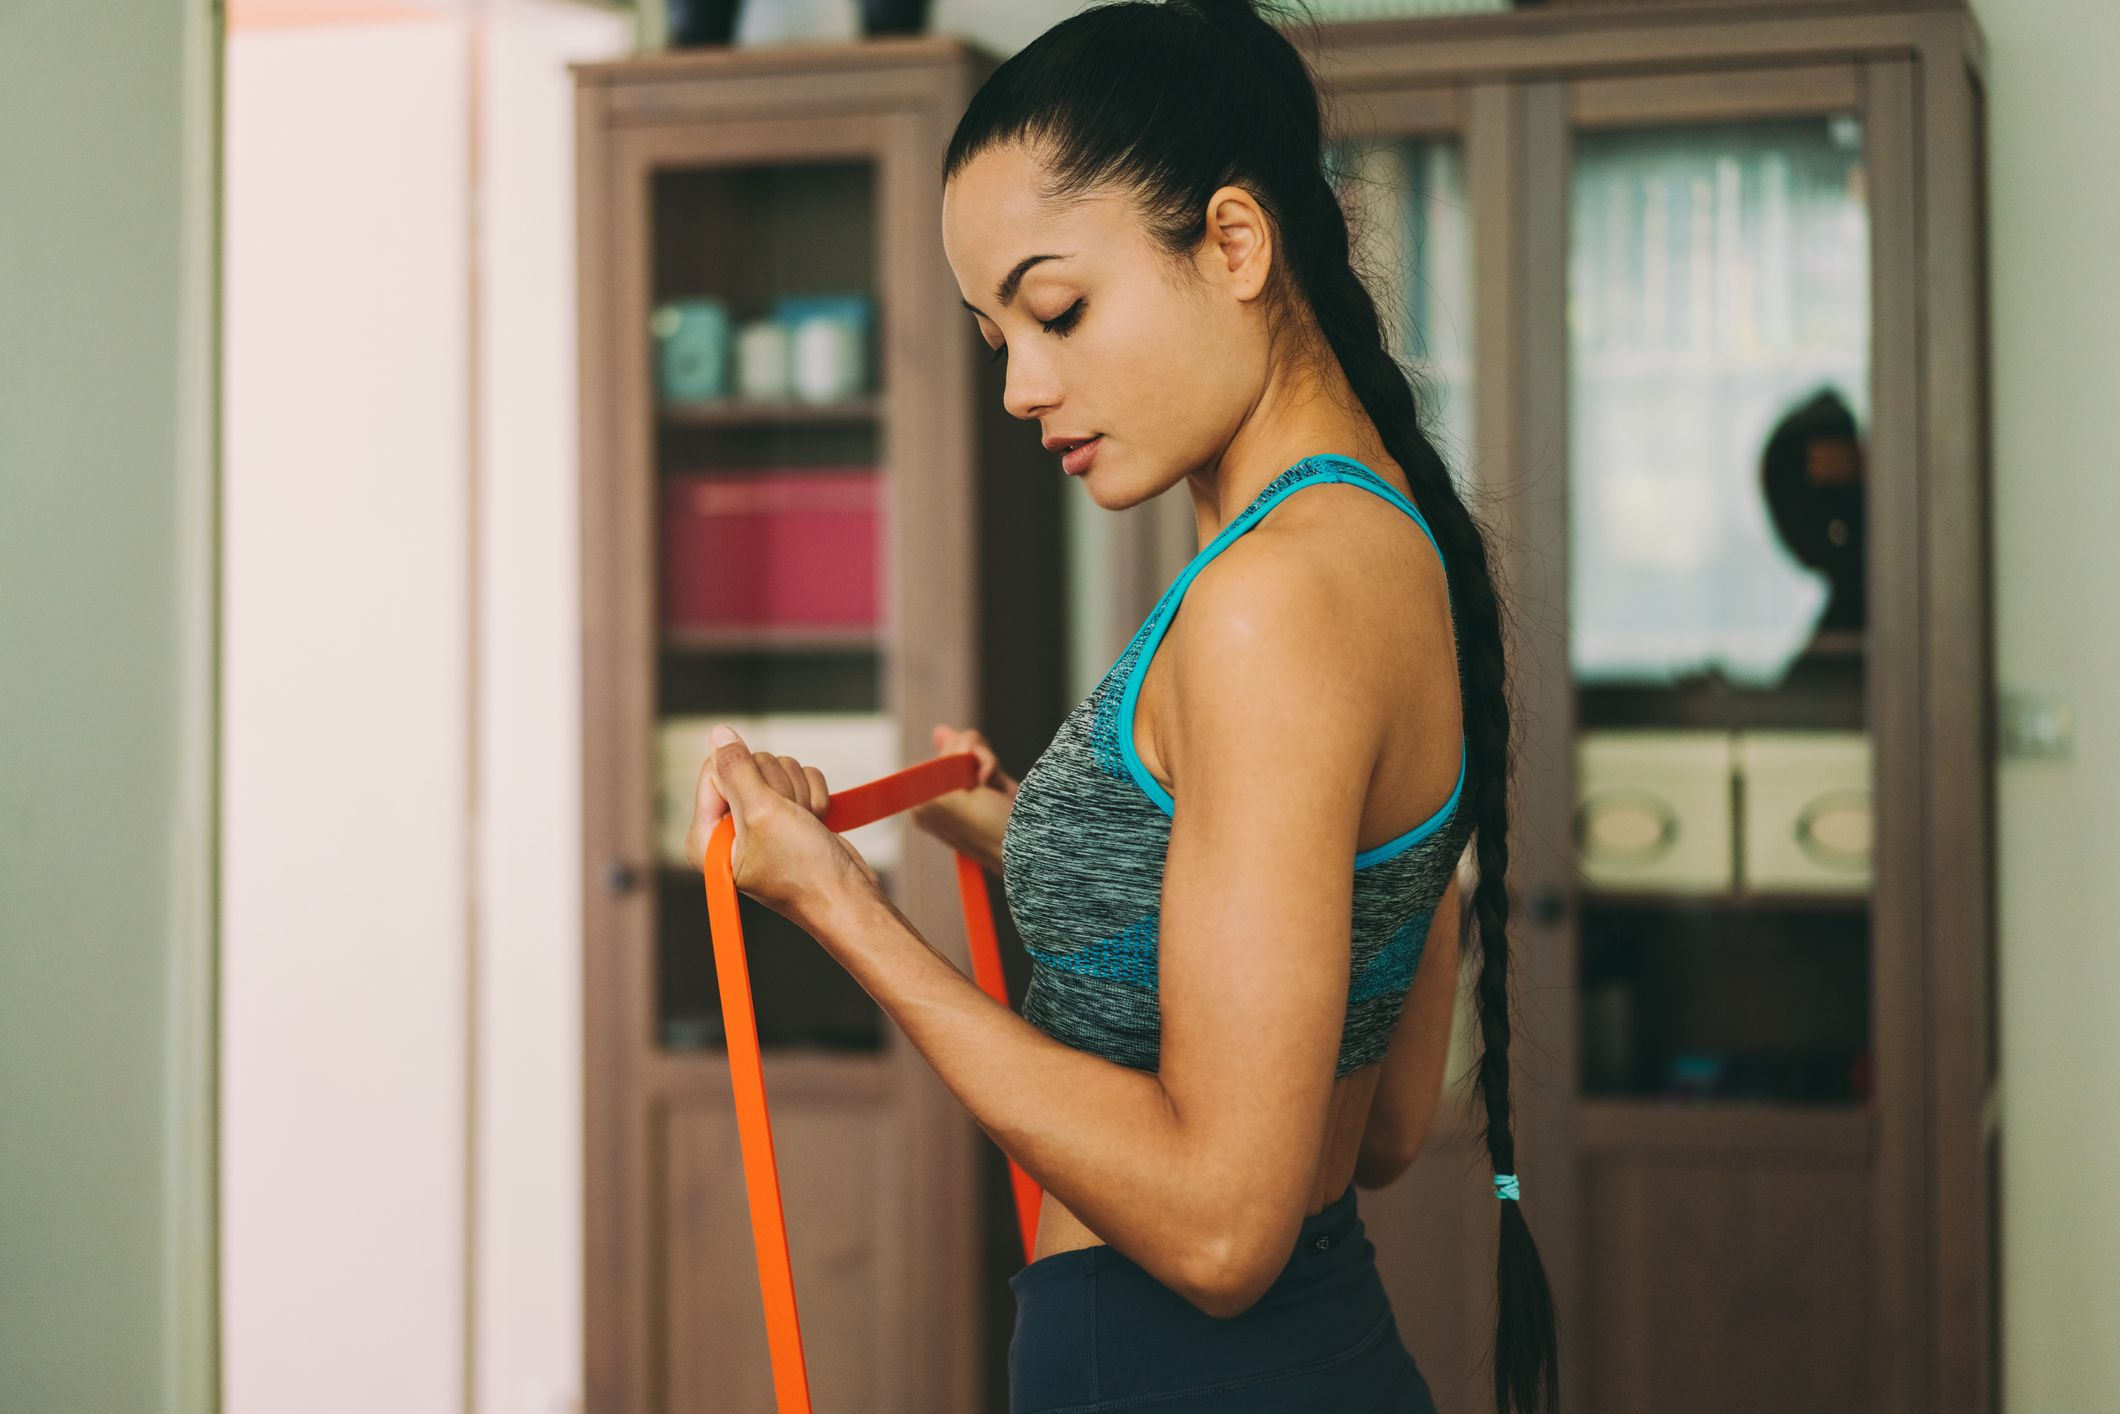 Try these long resistance band exercises for a killer at-home workout